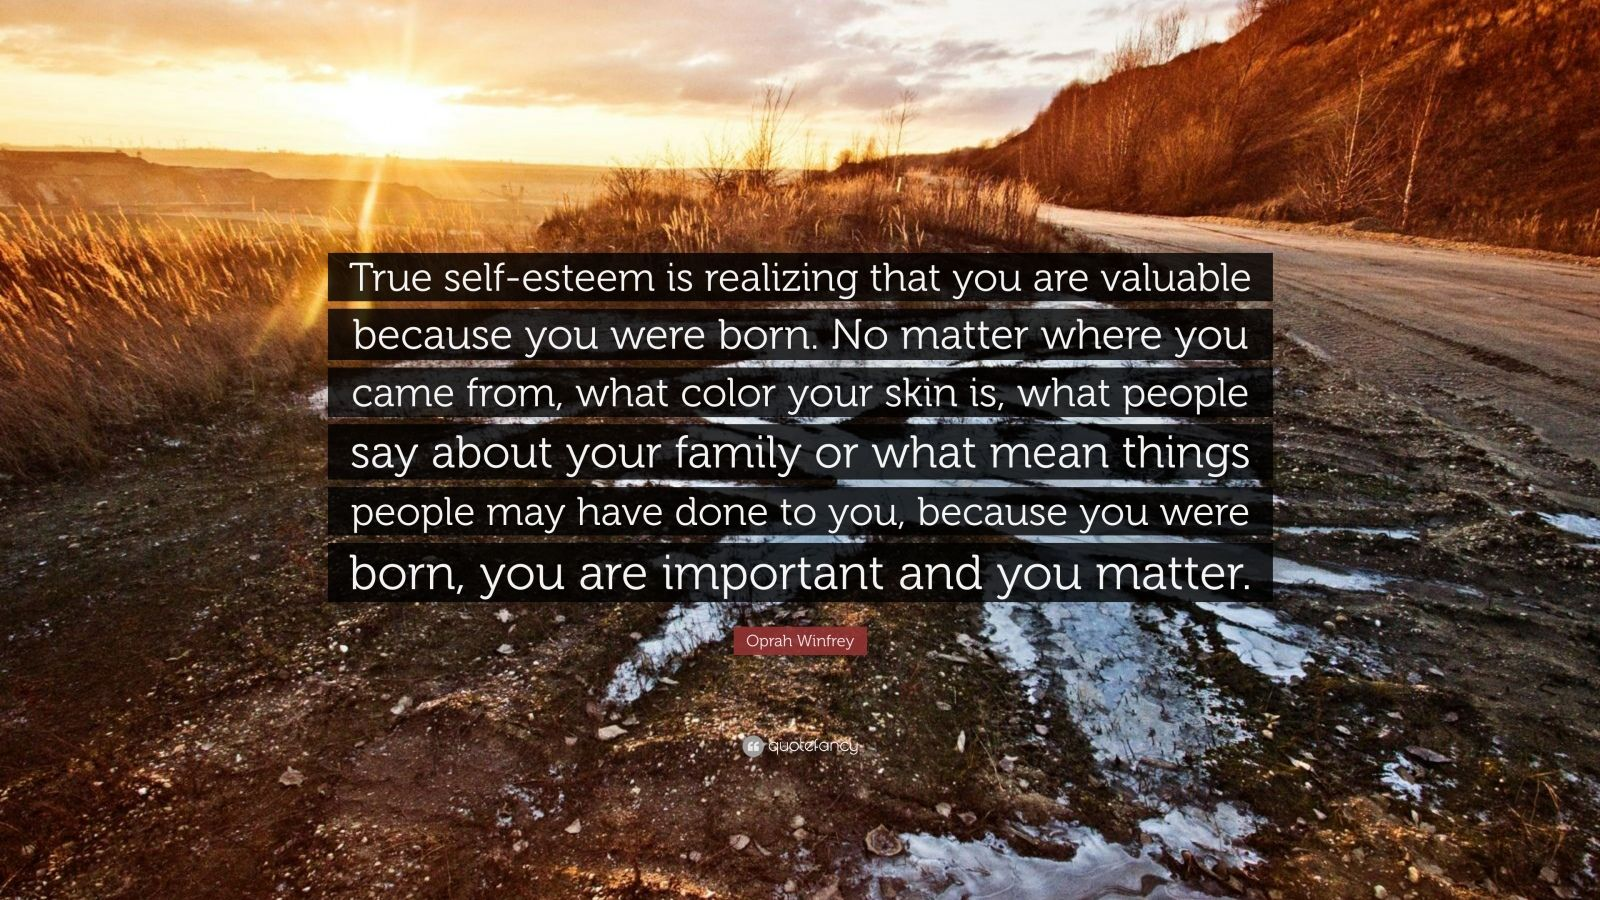 """Oprah Winfrey Quote: """"True self-esteem is realizing that you are valuable because you were born. No matter where you came from, what color your skin is, what people say about your family or what mean things people may have done to you, because you were born, you are important and you matter."""""""